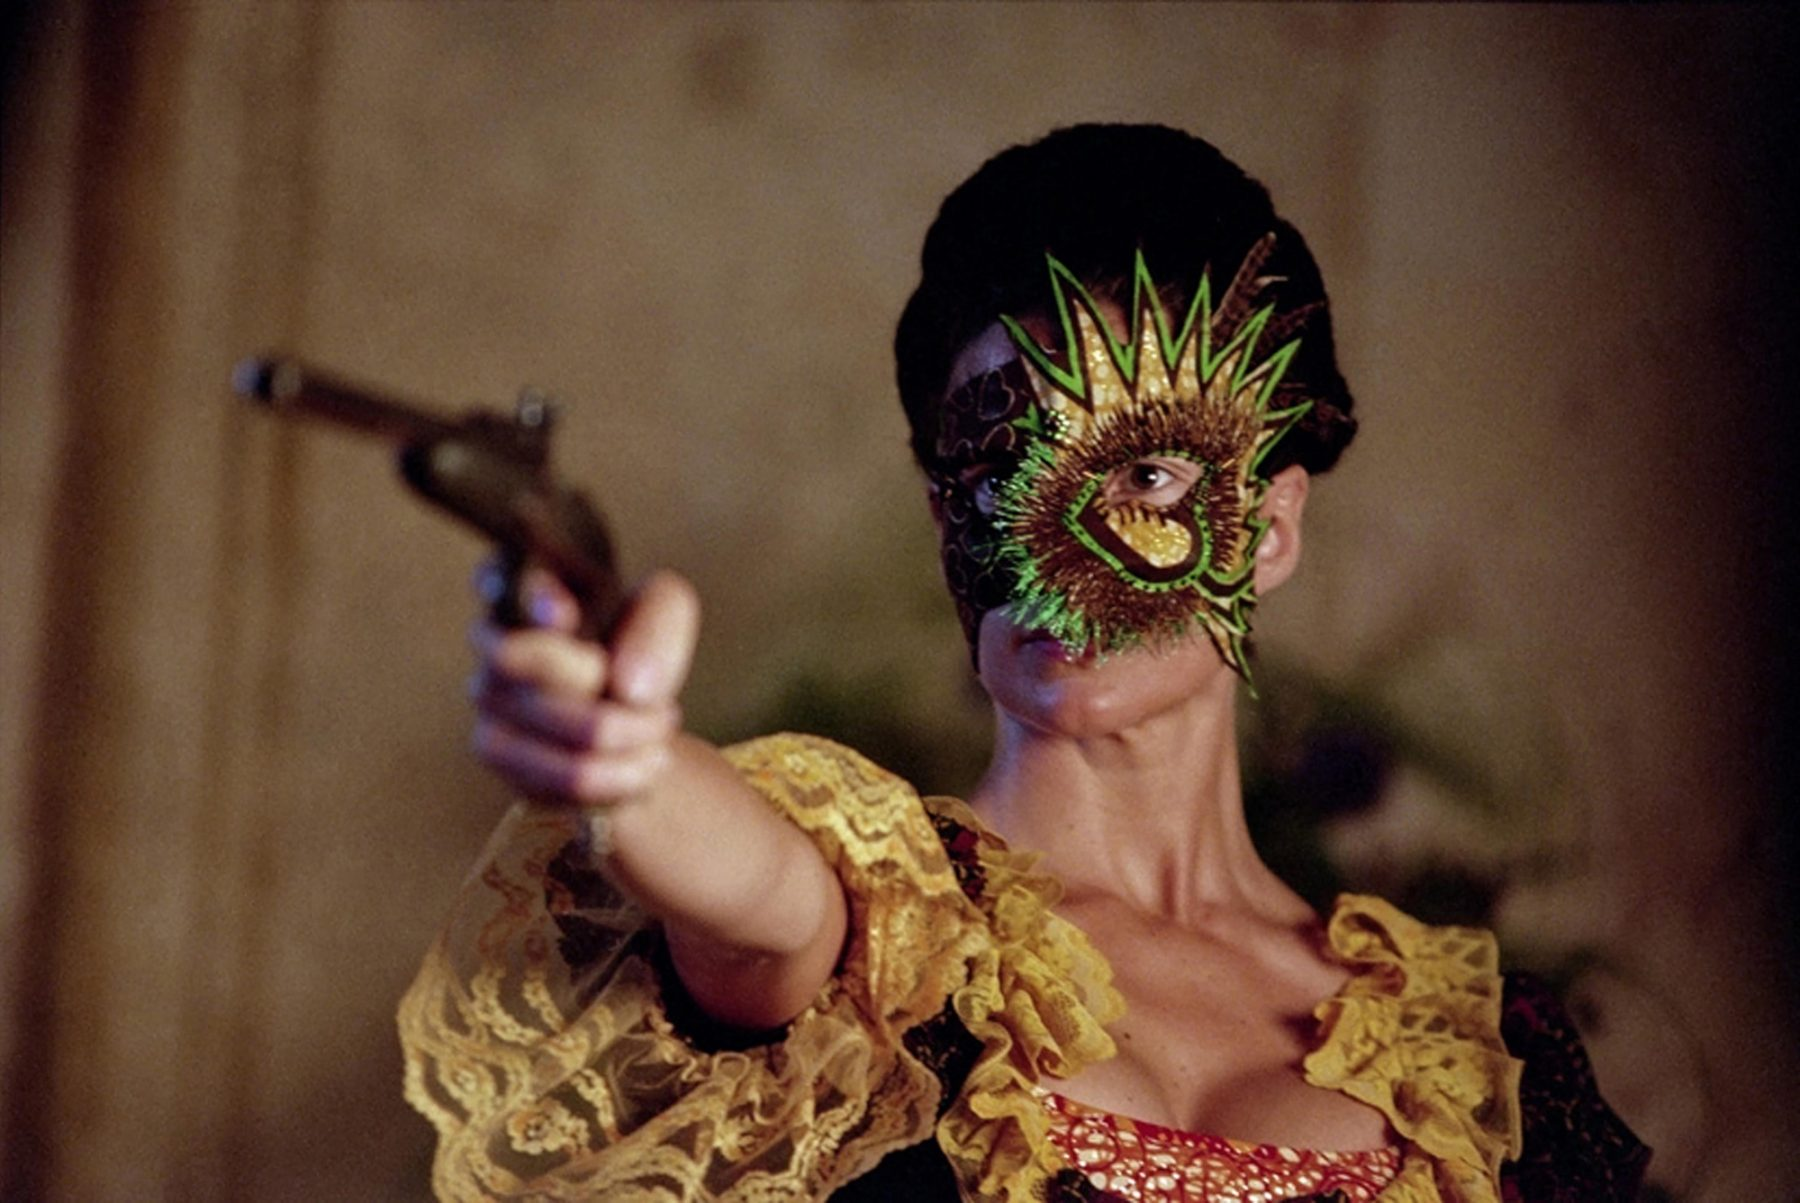 Un Ballo En Masquera (Video Still), 2004